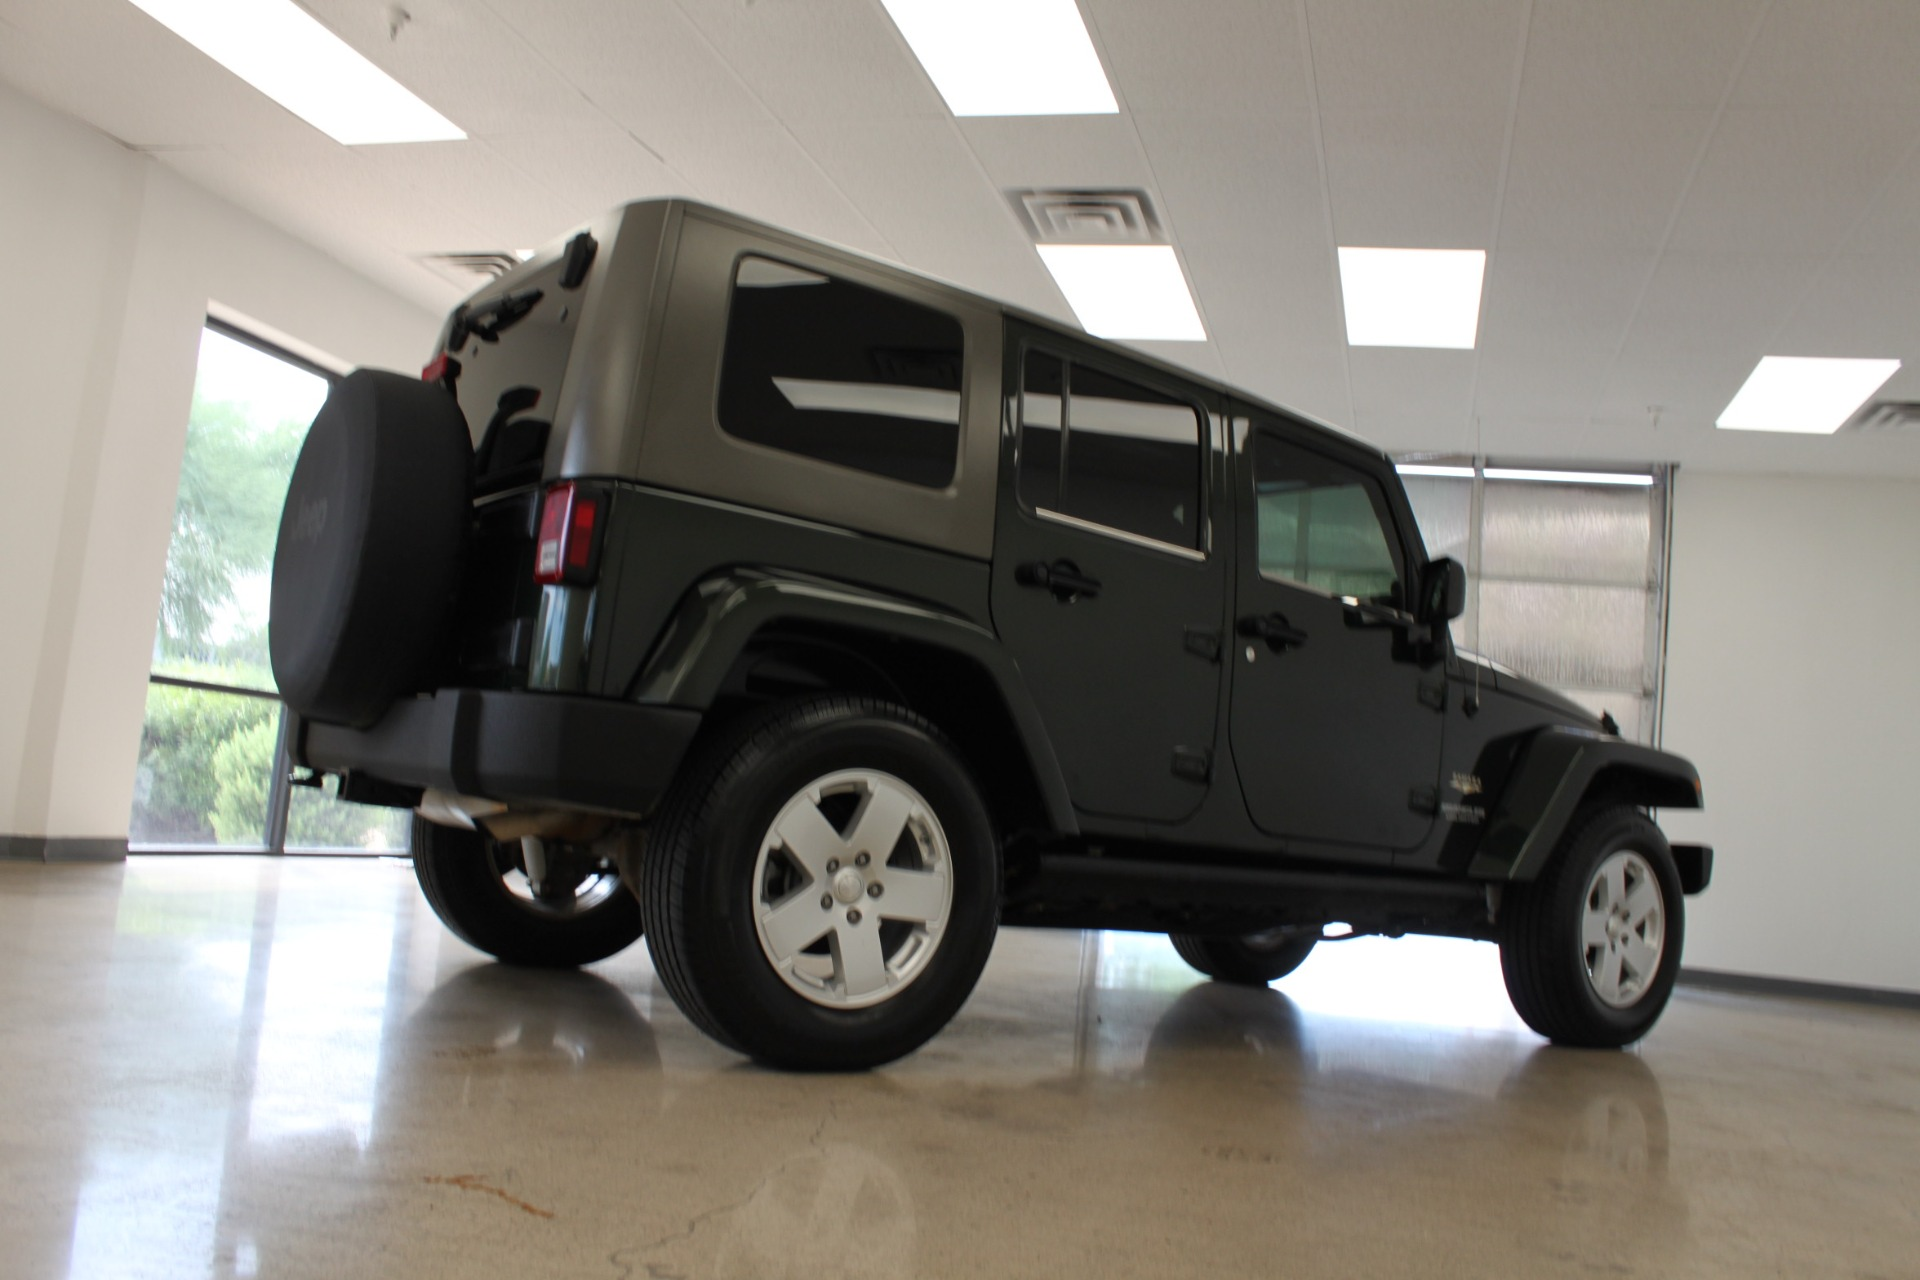 Used-2010-Jeep-Wrangler-Unlimited-Sahara-4X4-Chevelle